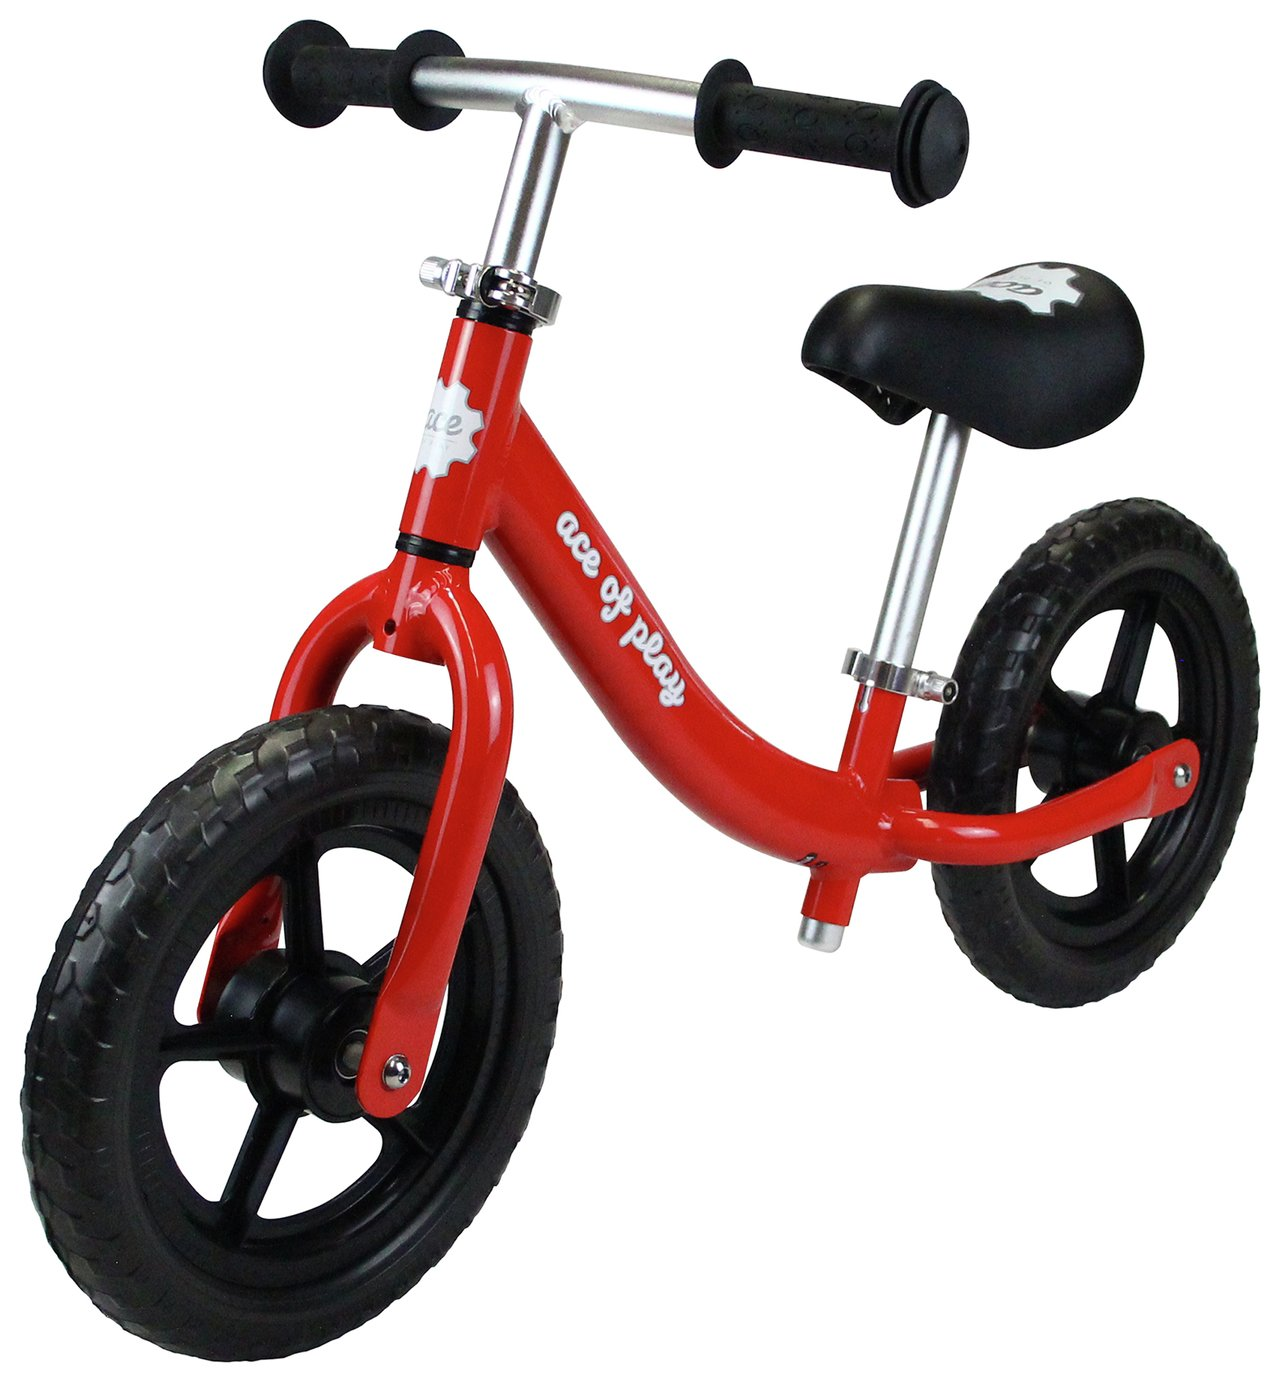 Image of Ace of Play Balance Bike - Red.